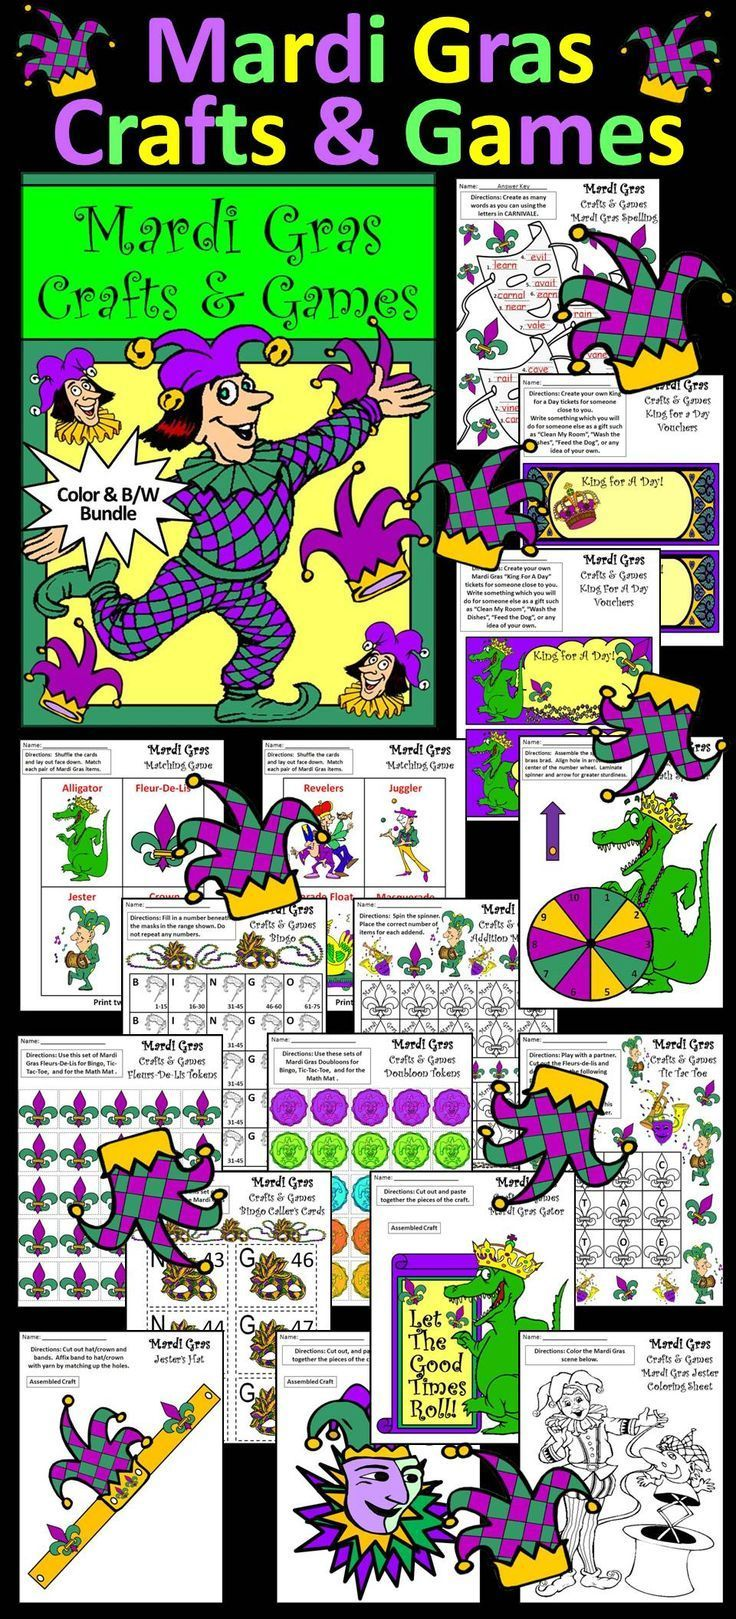 """Mardi Gras Crafts & Games Activity Packet: Contents include: * Spelling Activities * Matching Card Game * Alligator Math Spinner * Addition Math Mat * Tic Tac Toe Board * """"Create Your Own"""" Bingo Board * Fleurs-De-Lis Counters * Doubloons Counters  * Bingo"""